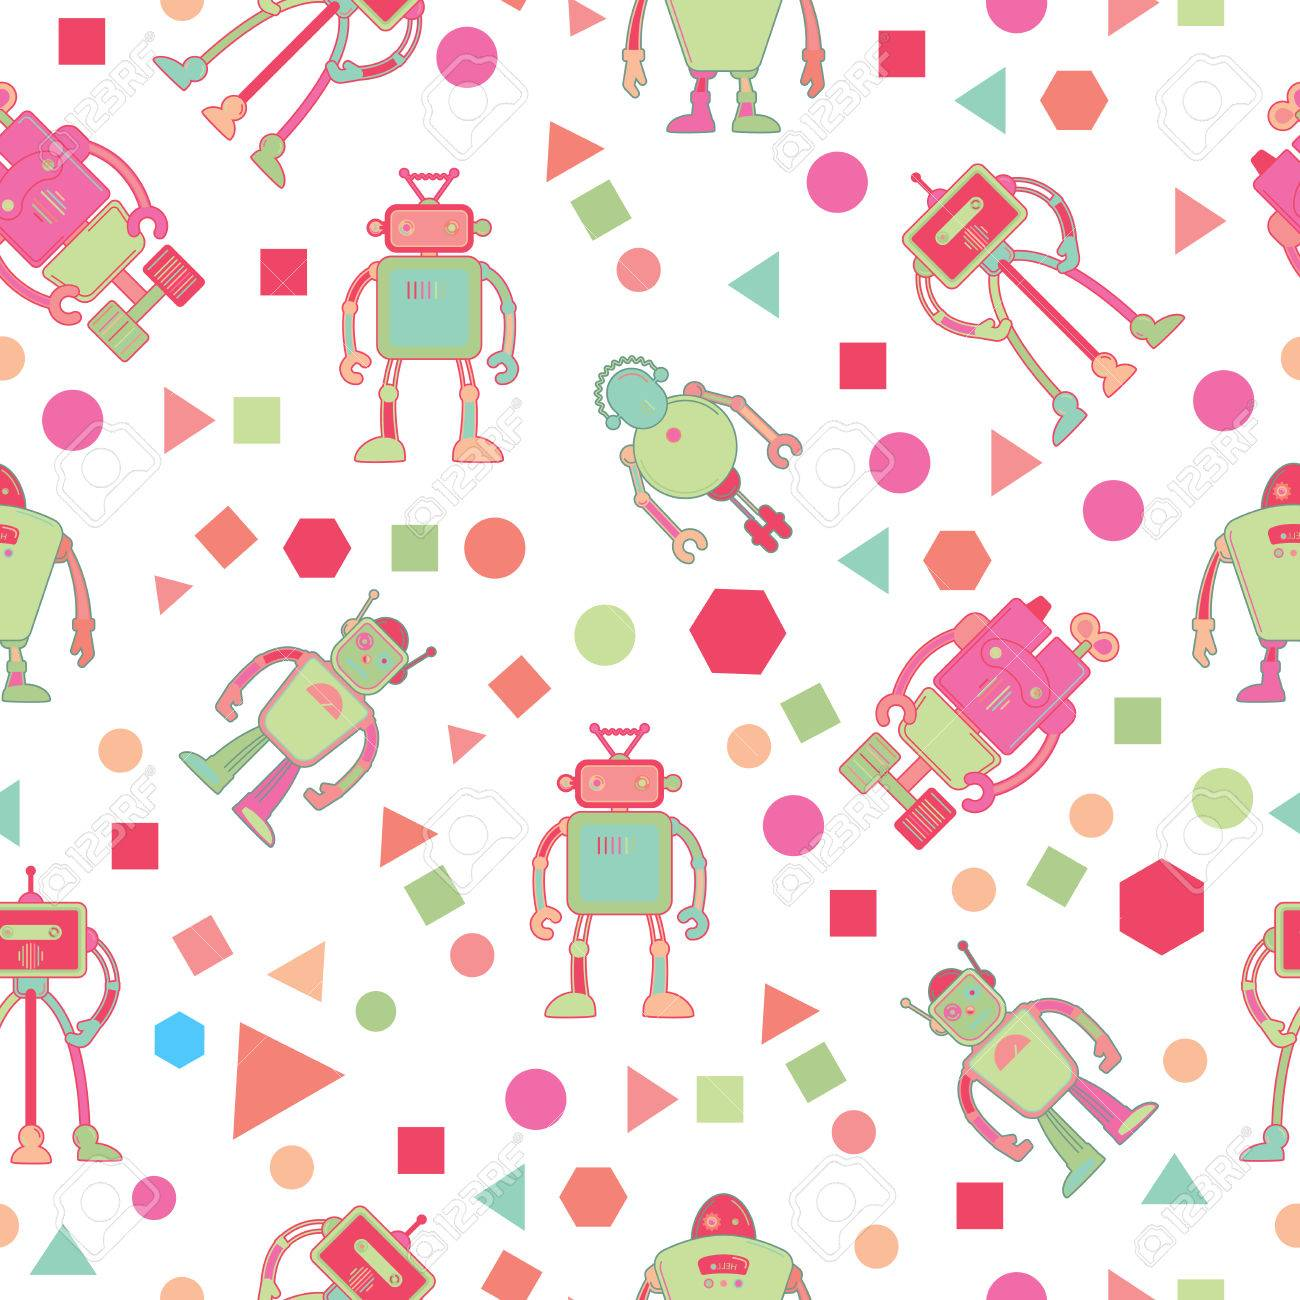 Seamless Pattern For Kids Wallpaper Design With Robots And Geometric Shapes Vector Illustration Stock